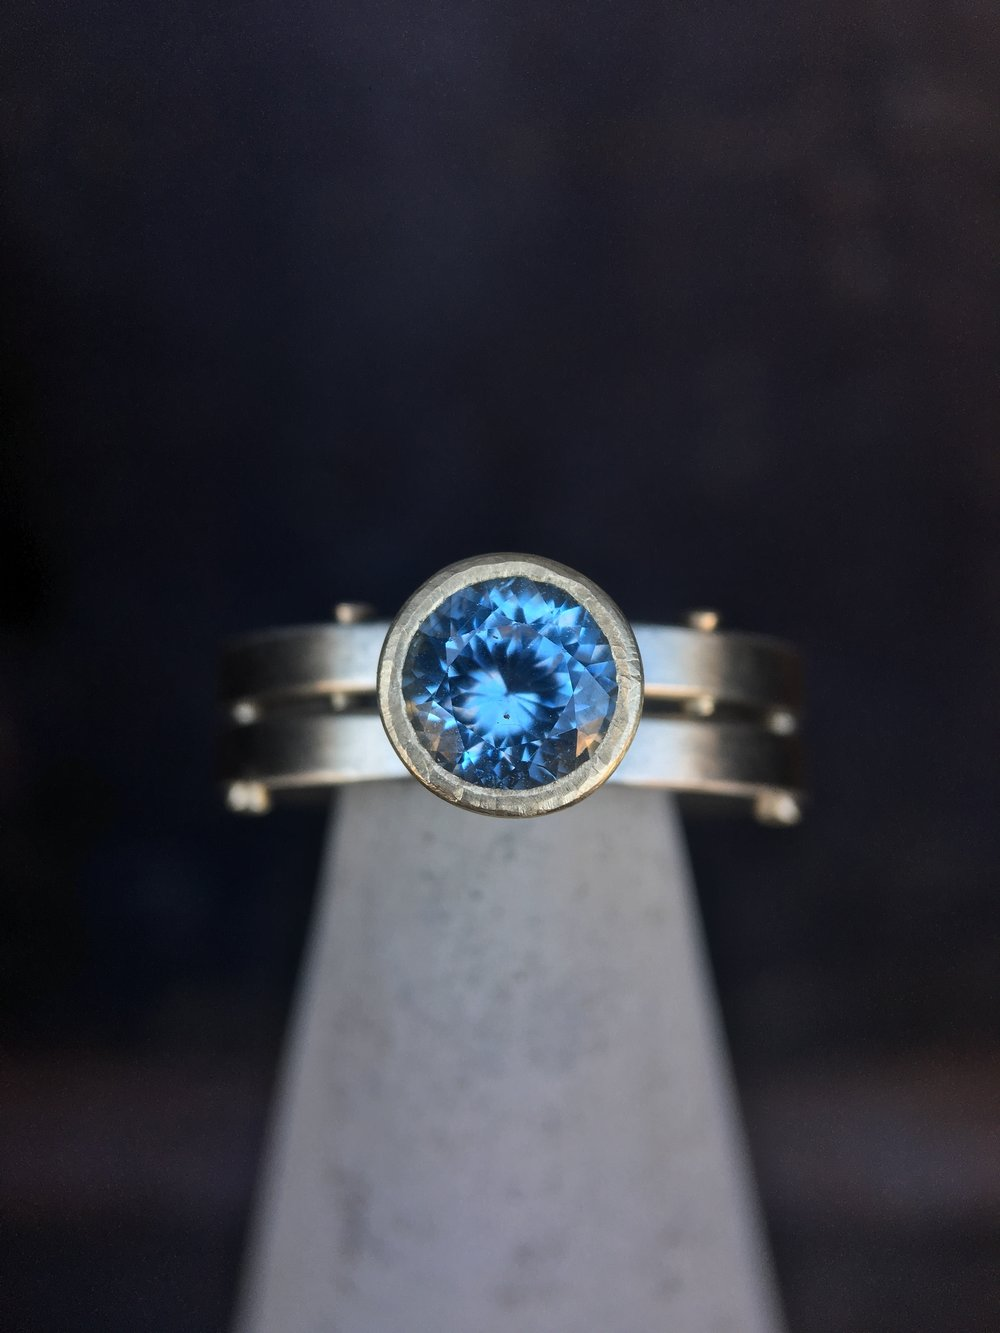 Industrial Bling Montana Sapphire 14KT White Gold 14KT Gold Rivet Ring